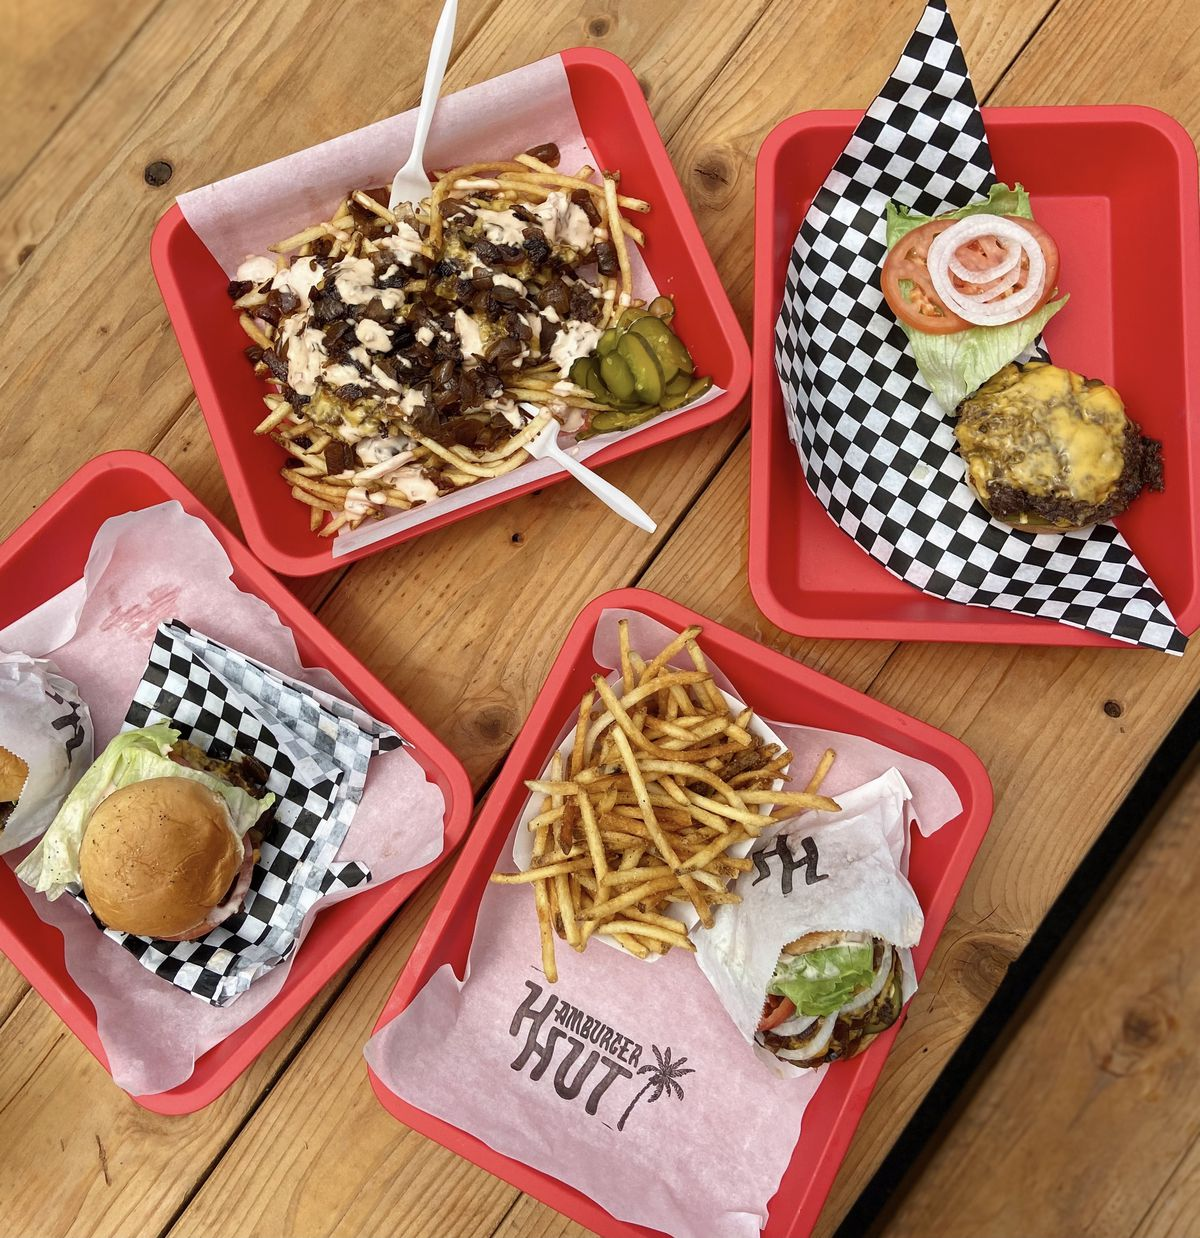 Trays on a table holding burgers and Java fries from Hamburger Hut